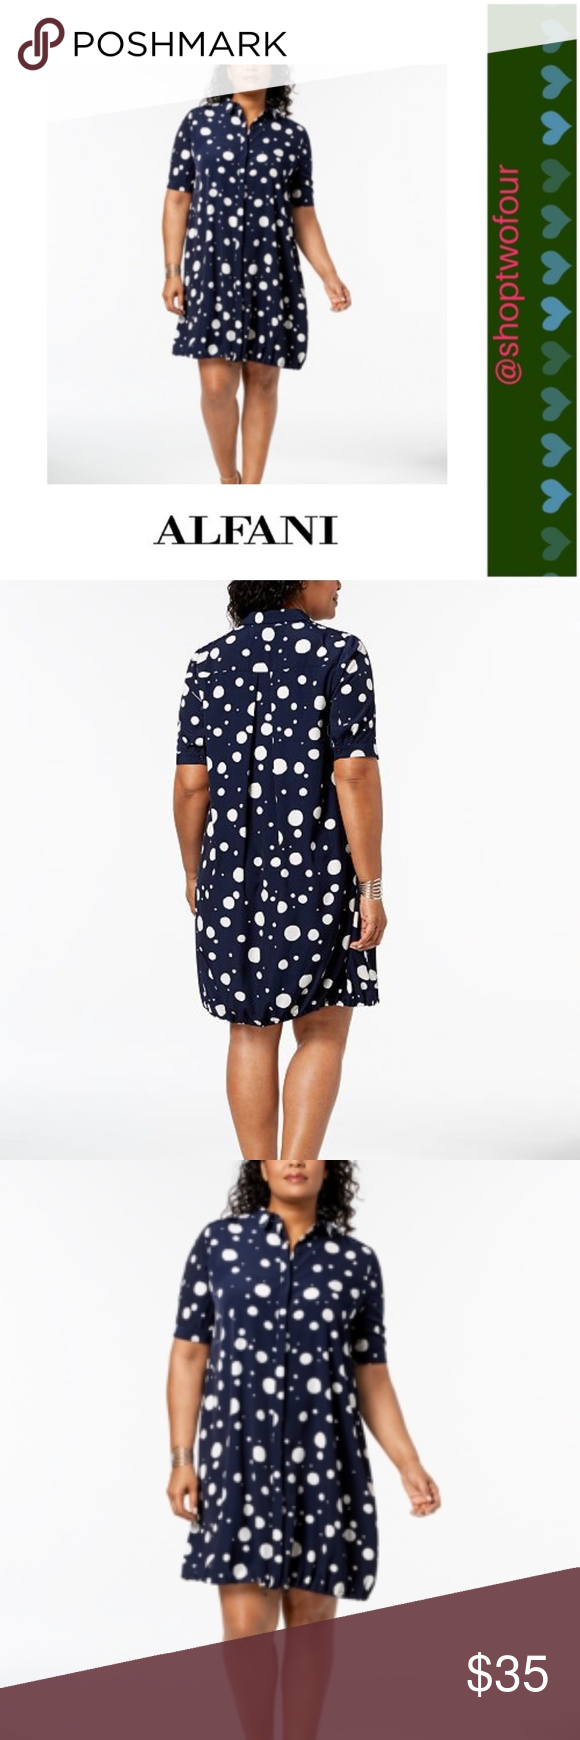 610a4300af2 Alfani Plus Size Bungee-Hem Navy Shirtdress NWT Printed with a bold dot  pattern